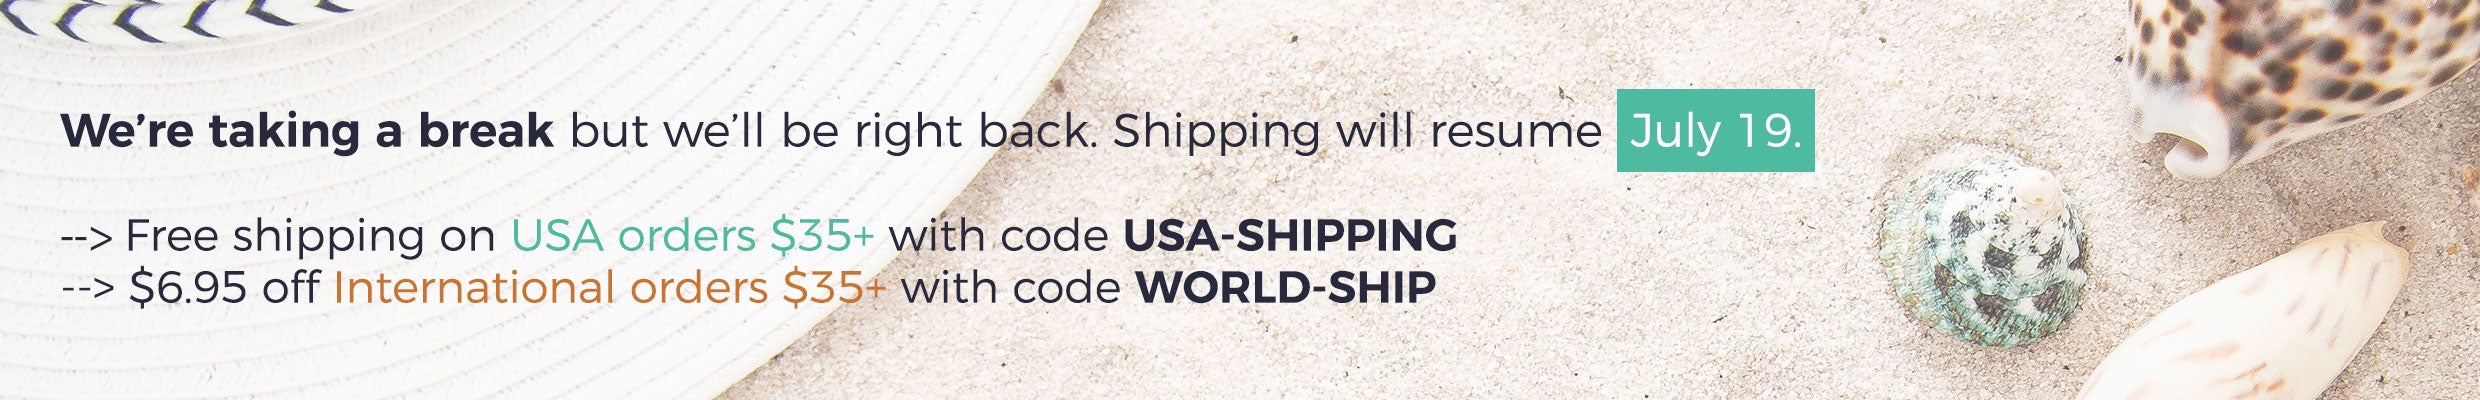 Shipping break. Shipping will resume July 19, 2019. Use code USA-SHIPPING for free shipping on orders $35+. $6.95 off international orders $35+ with code WORLD-SHIP